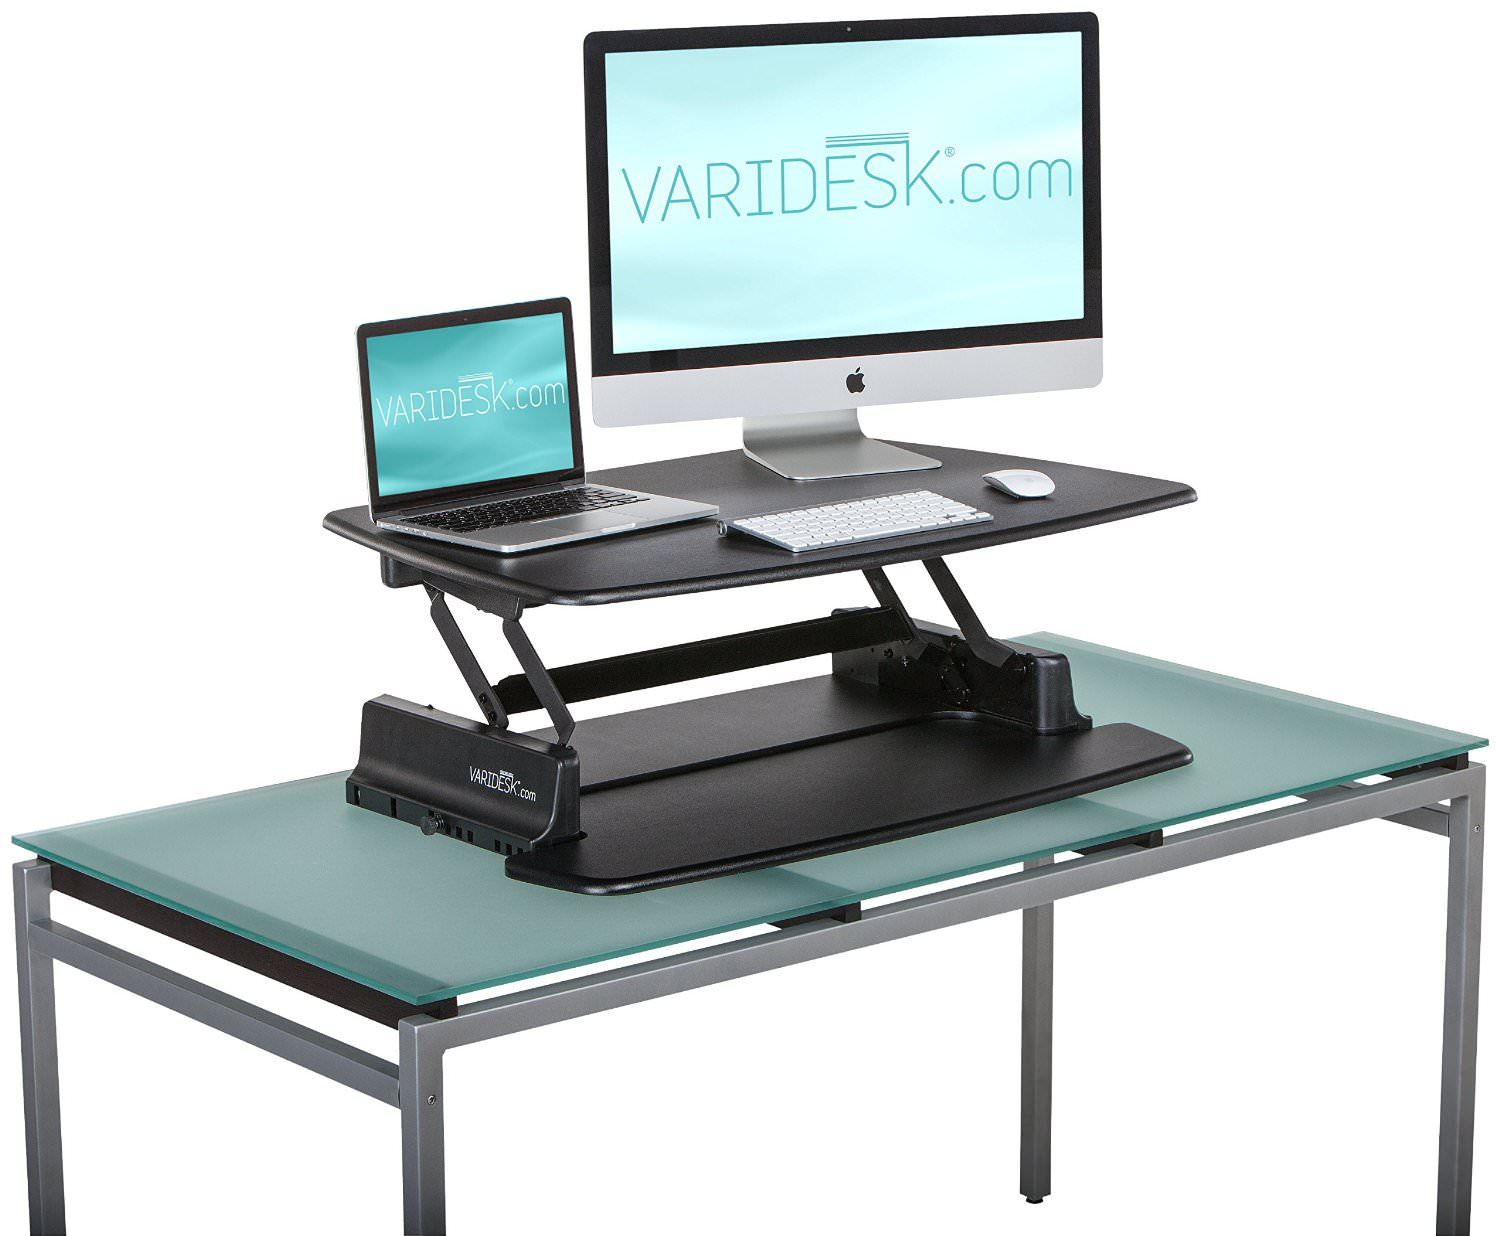 Portable Standing Desk in 2020 (With images) Portable